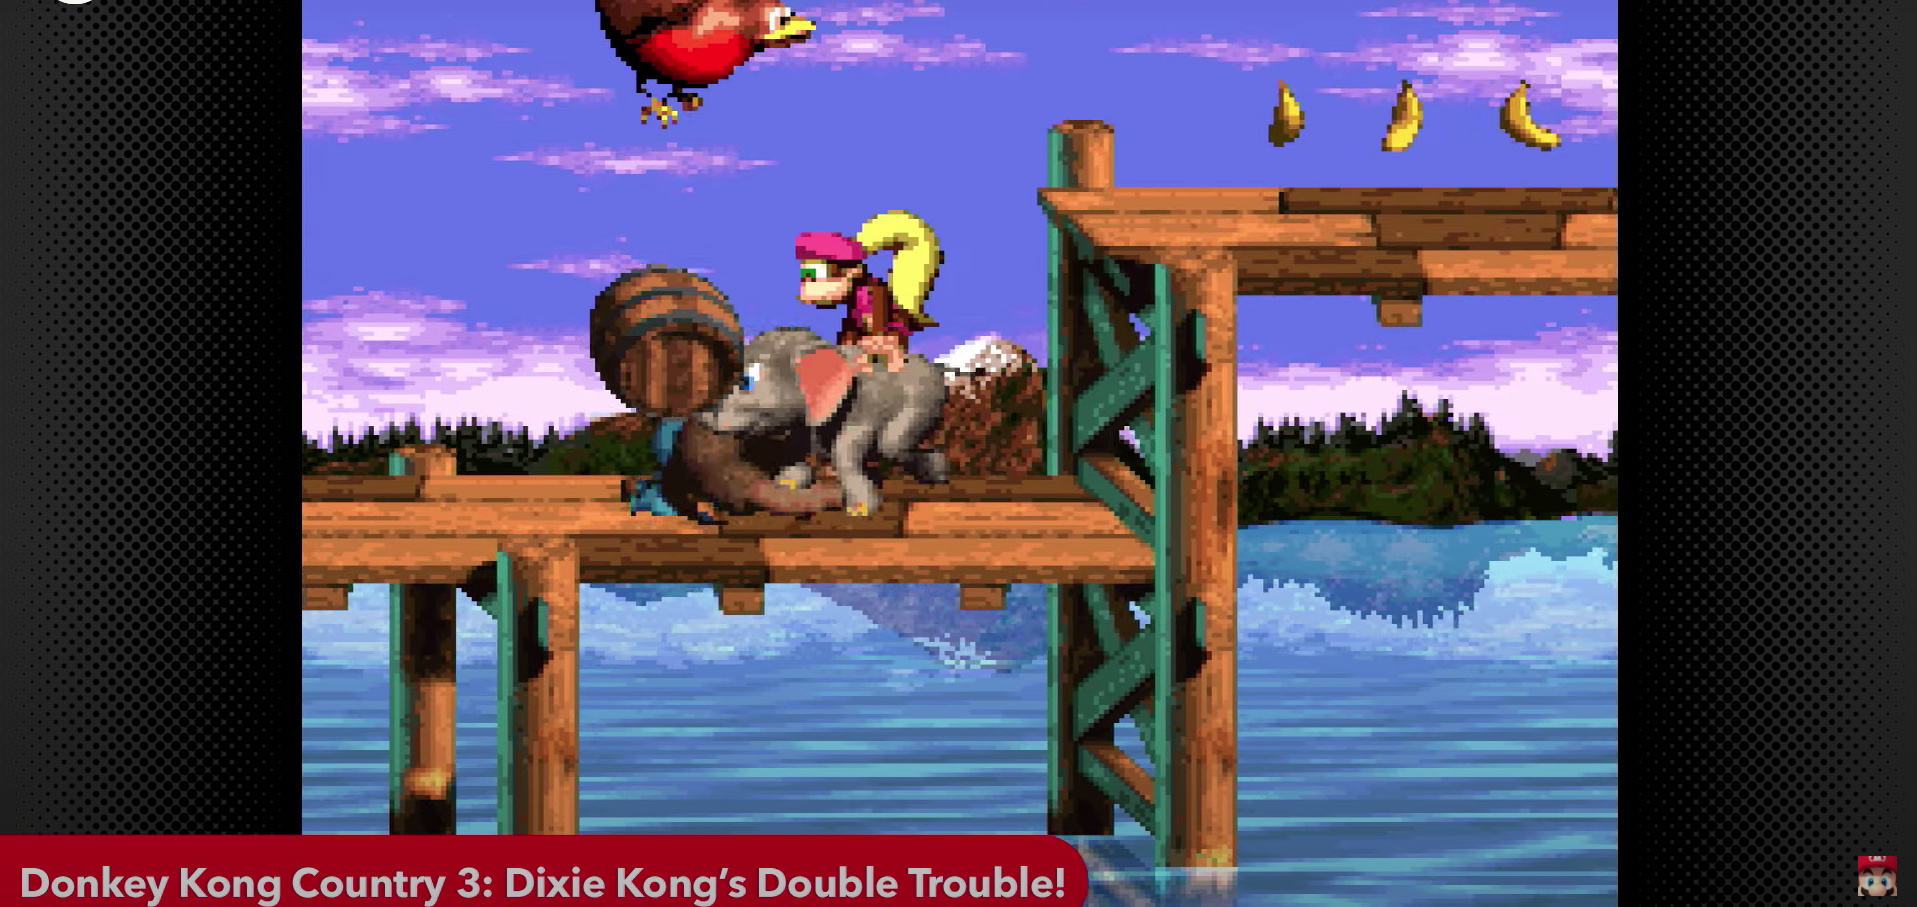 Donkey Kong Country 3 comes to Switch Online